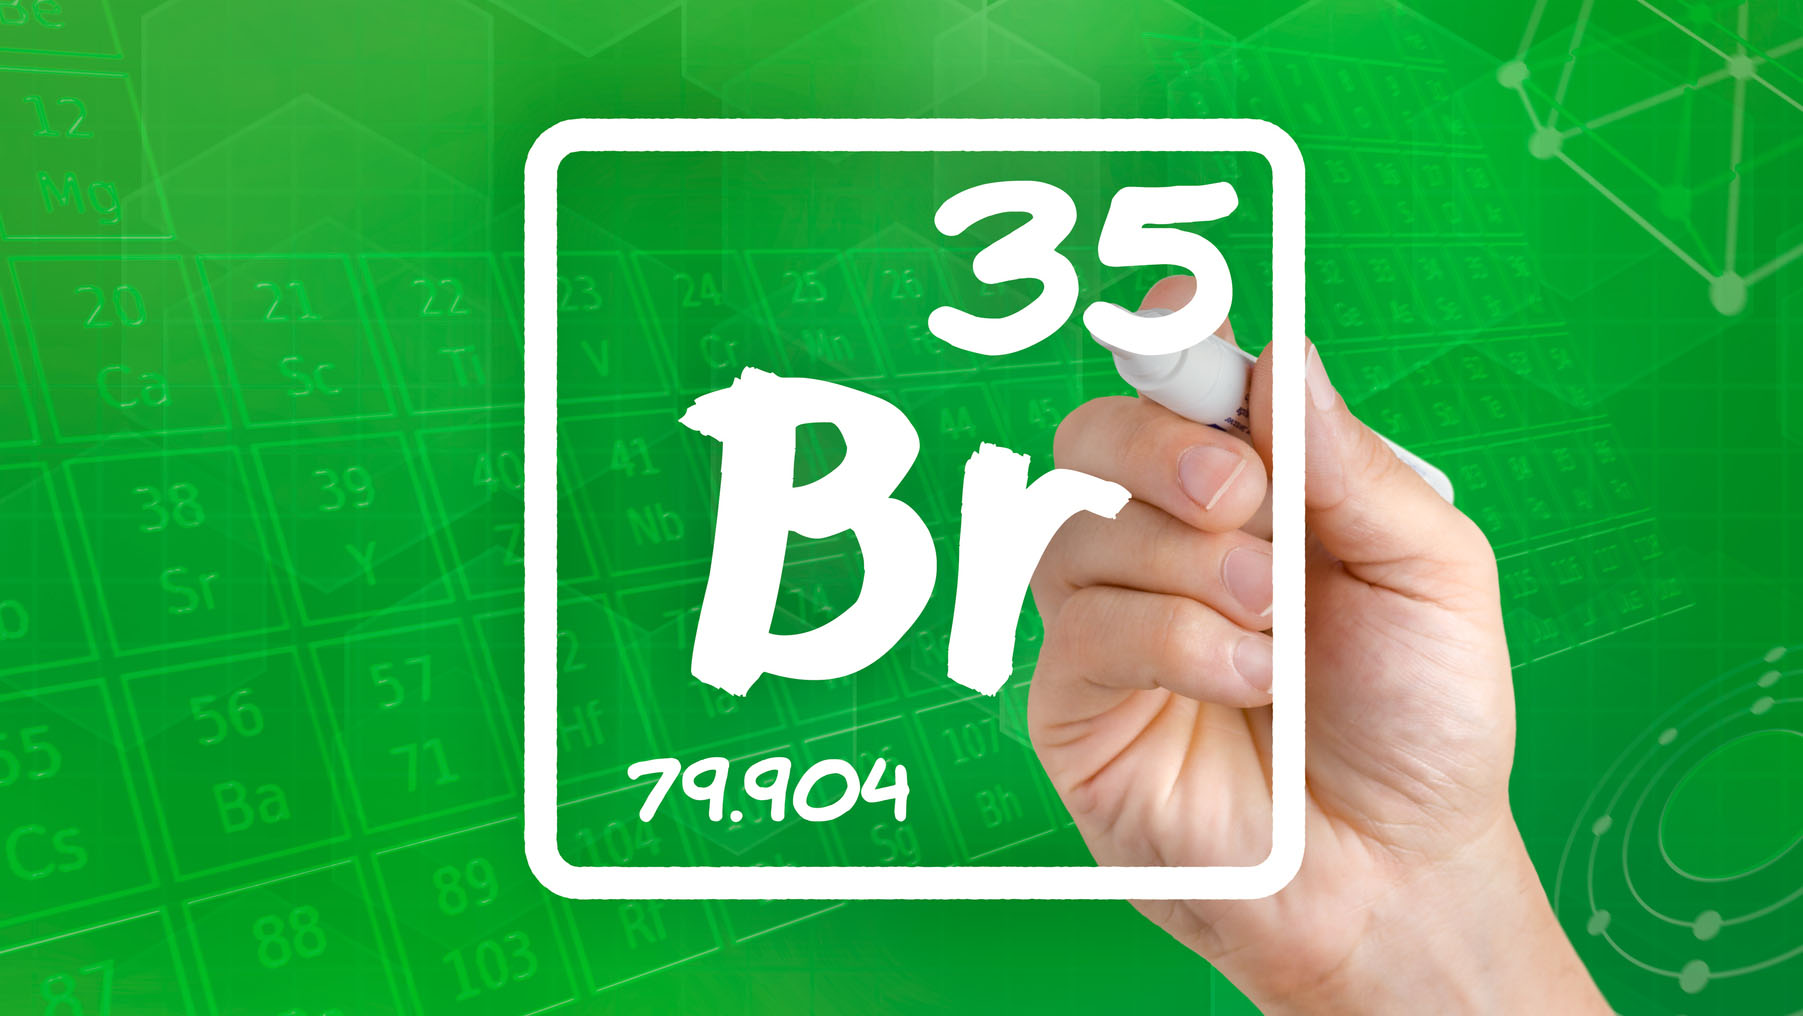 Bromine's information from the periodic table